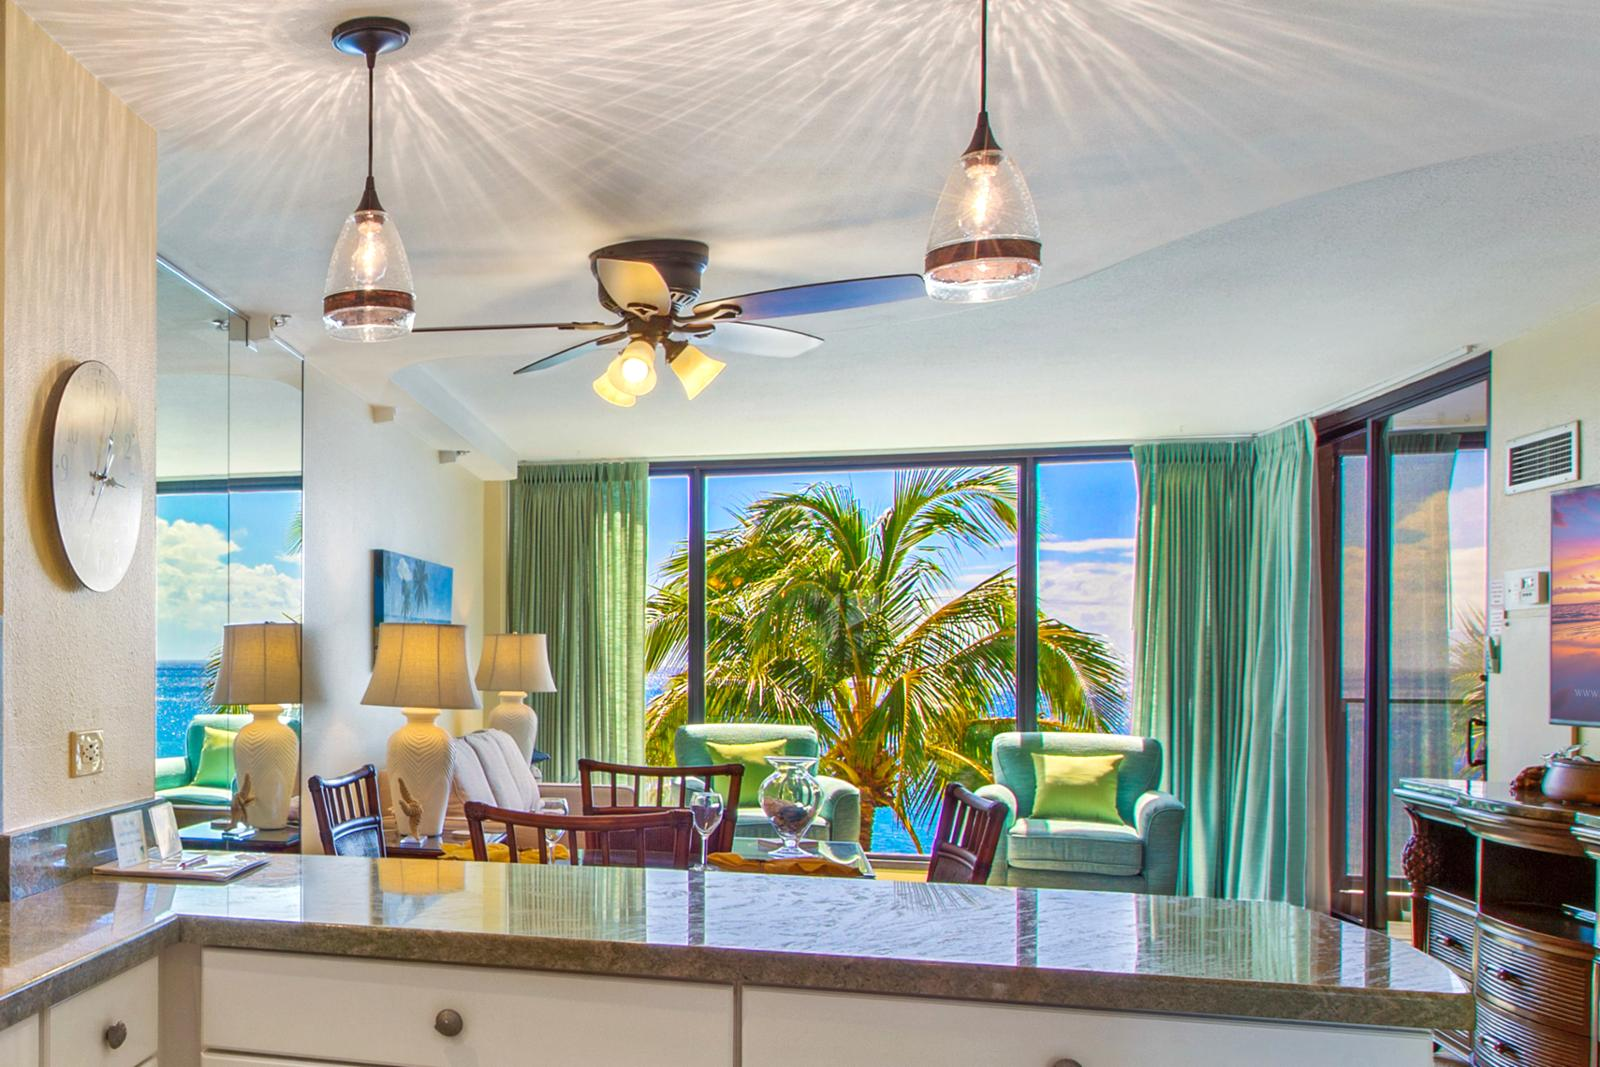 View the ocean from your kitchen!